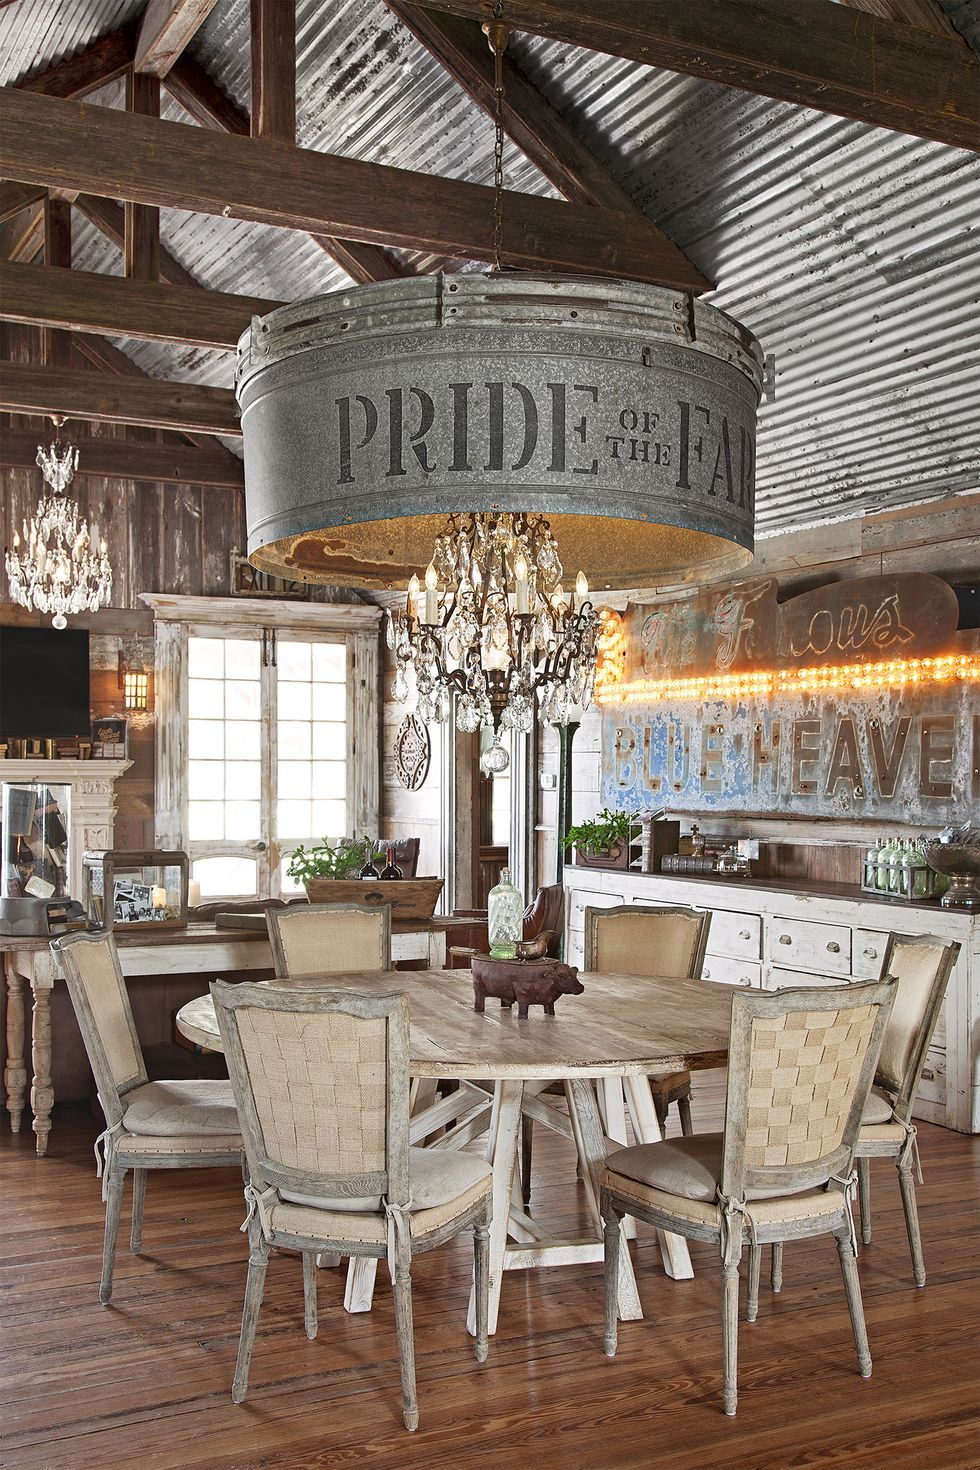 This Rustic Farmhouse Has the Most Incredible Chandelier ...